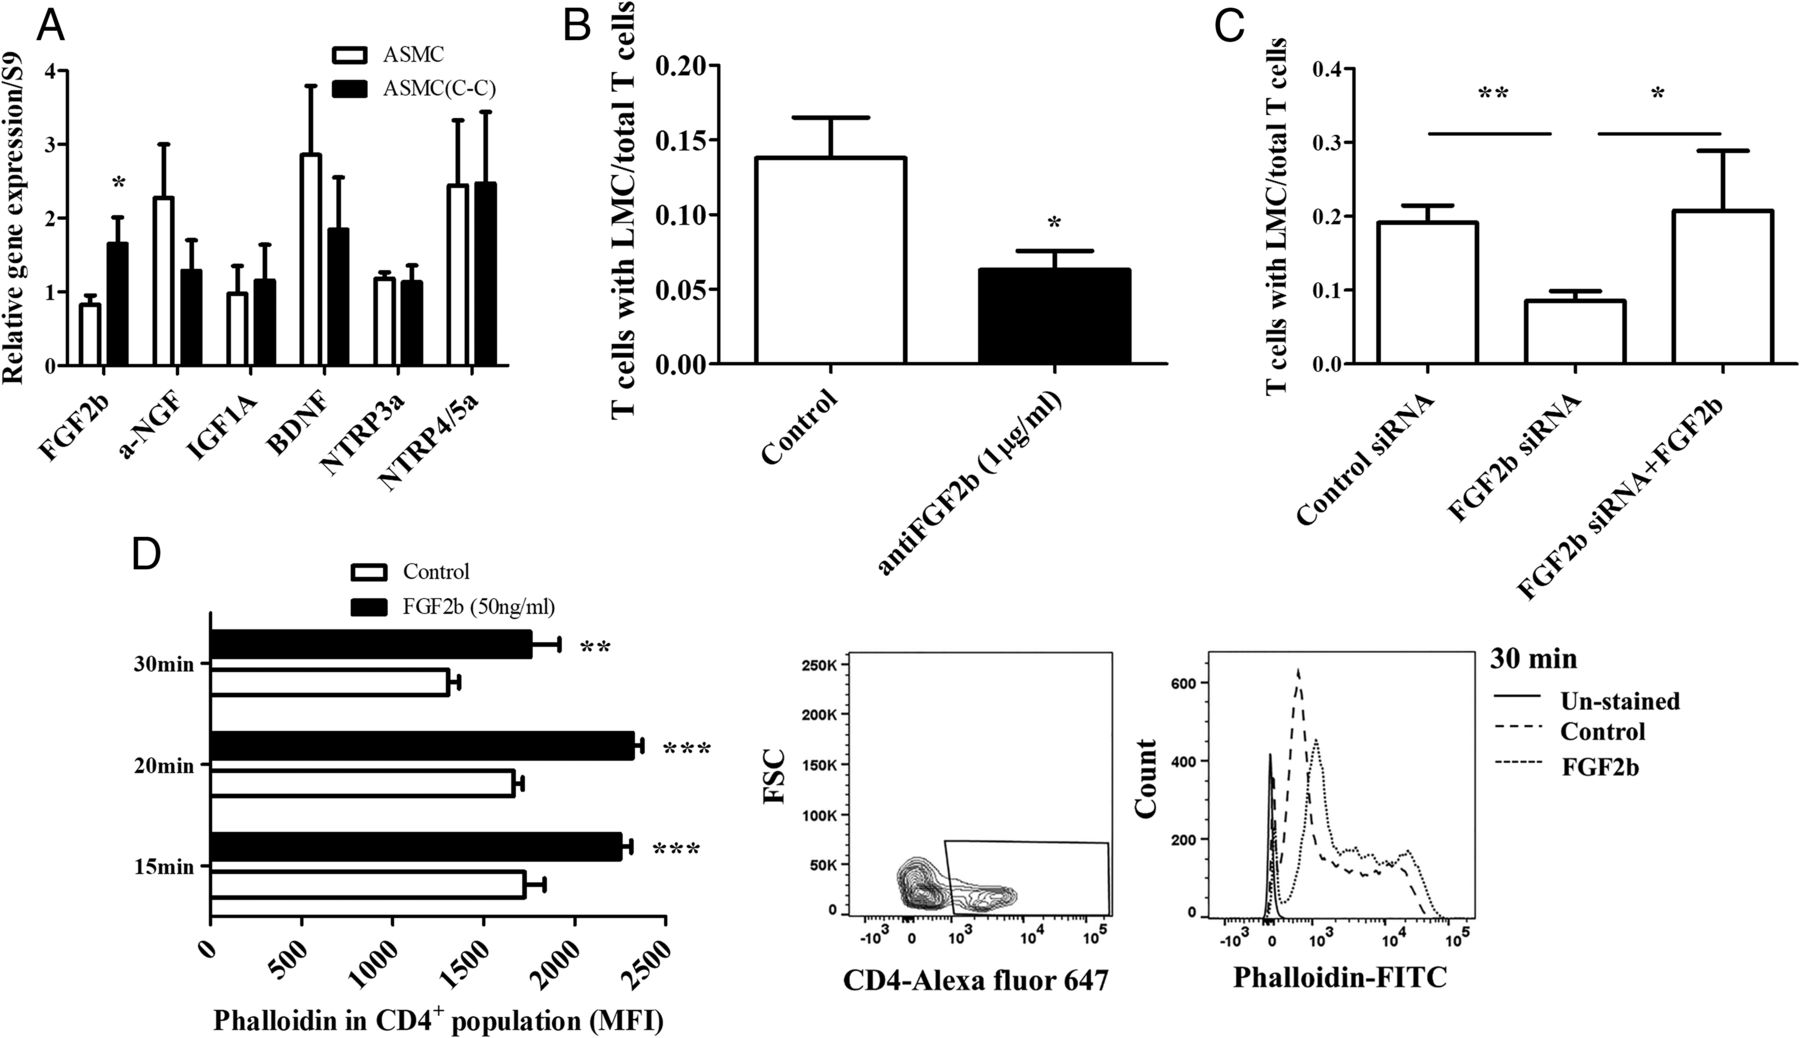 Basic Fibroblast Growth Factor 2 Is a Determinant of CD4 T Cell